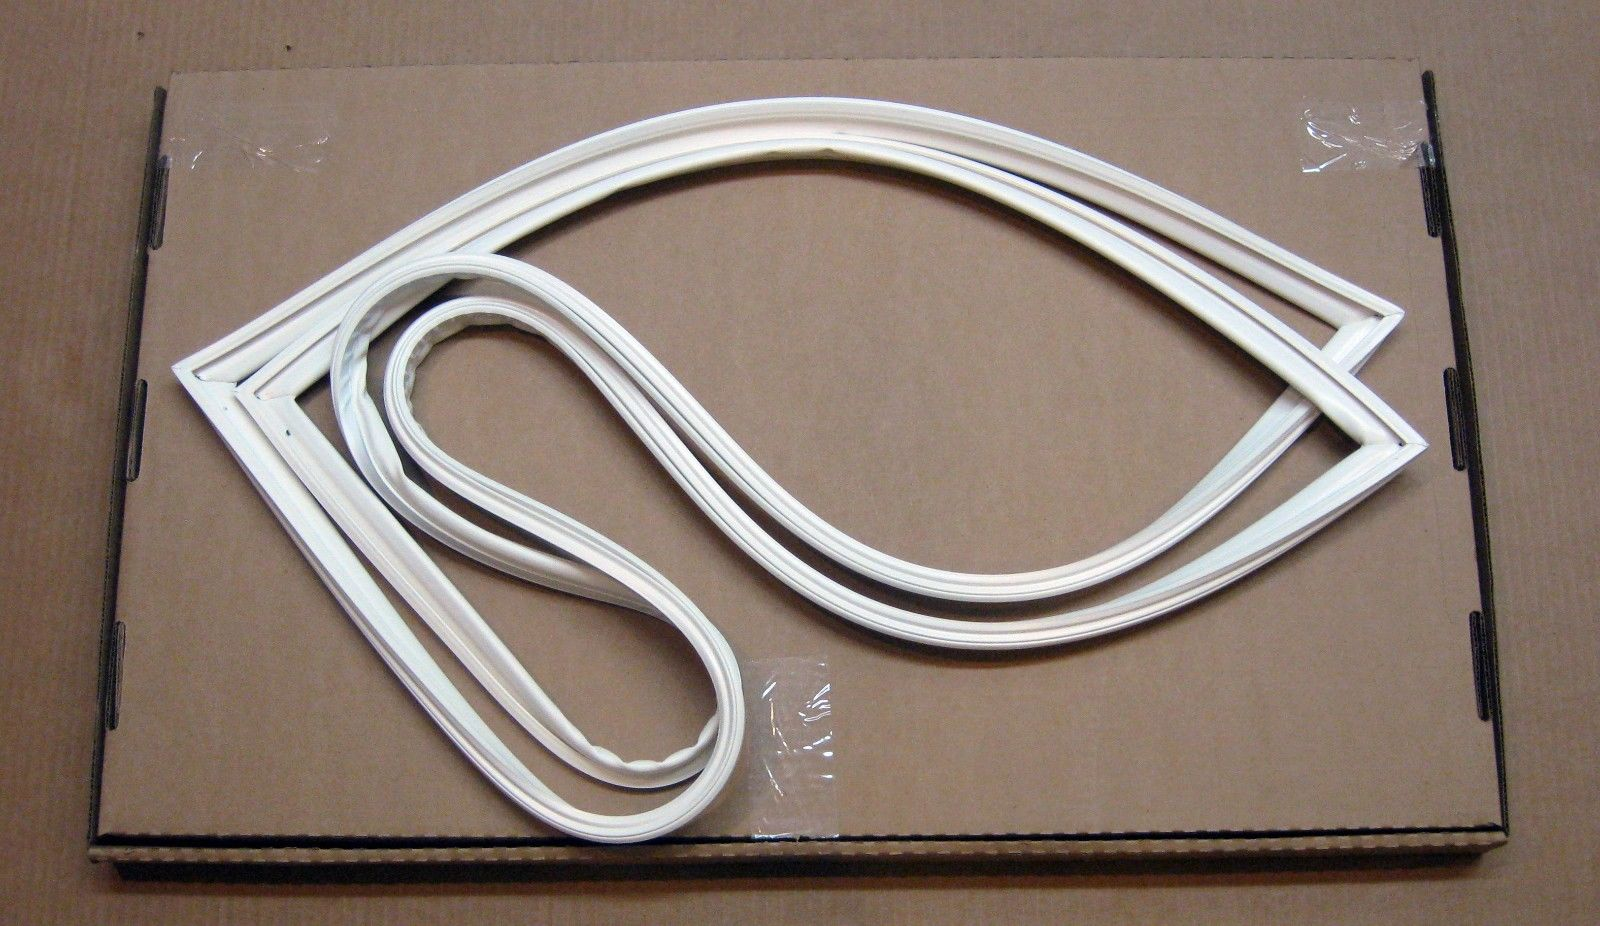 2188438a replaces whirlpool refrigerator door gasket seal. Black Bedroom Furniture Sets. Home Design Ideas